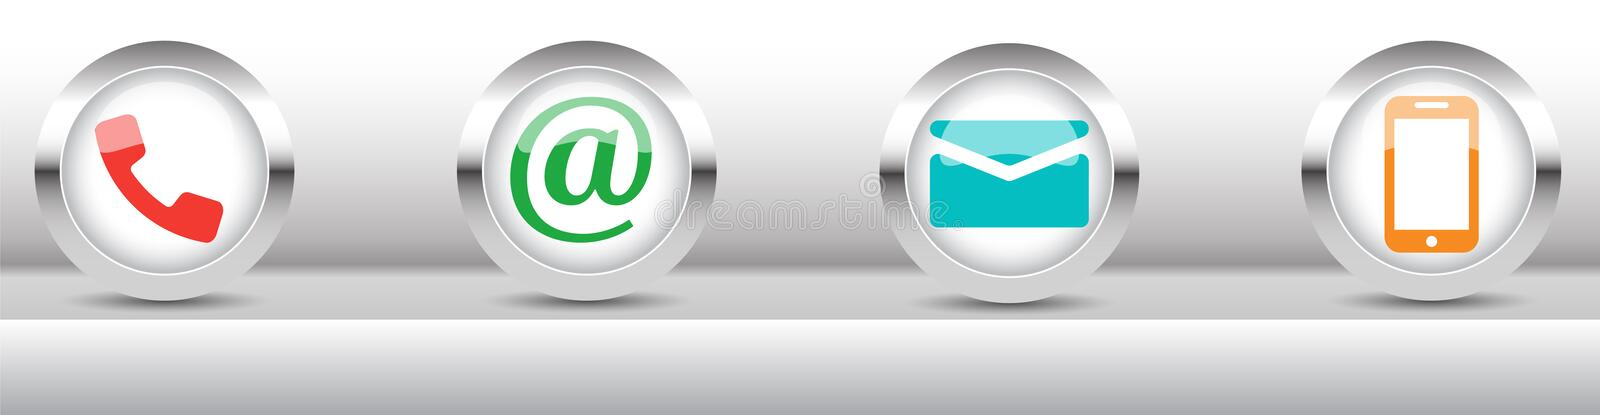 Contact Us Web Buttons Set Stock Vector Illustration Of Online